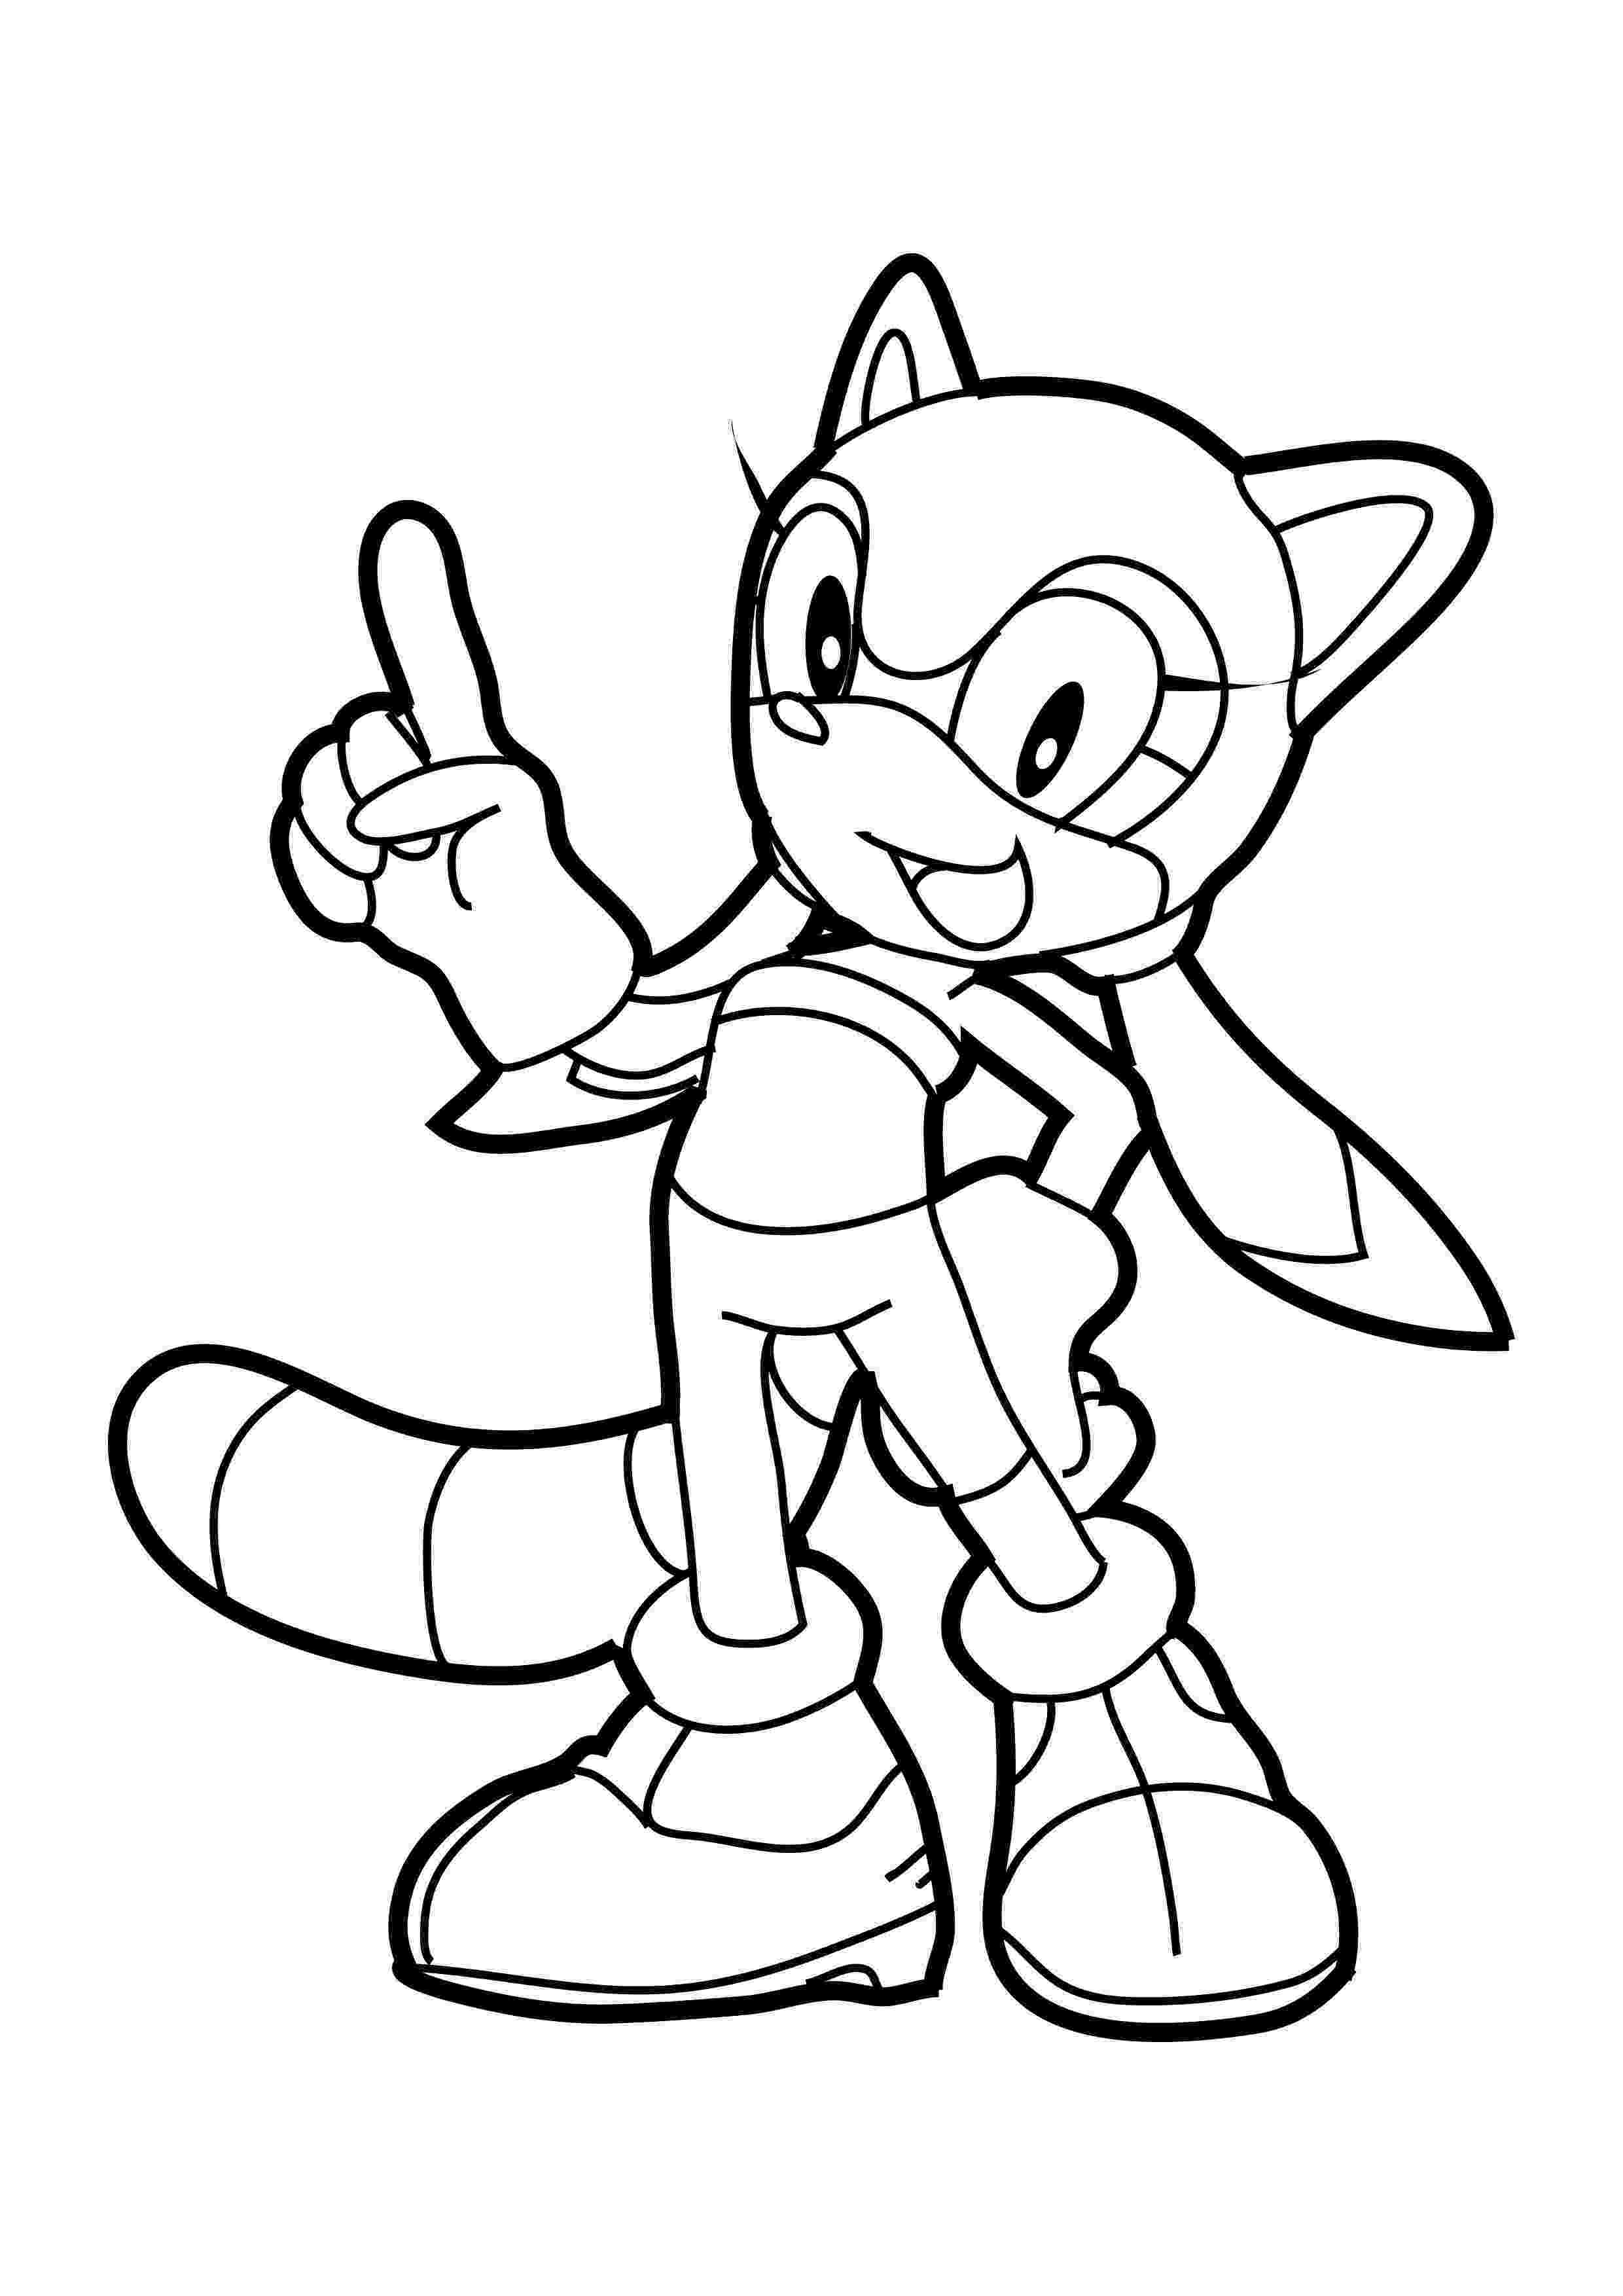 sonic coloring free printable sonic the hedgehog coloring pages for kids coloring sonic 1 3